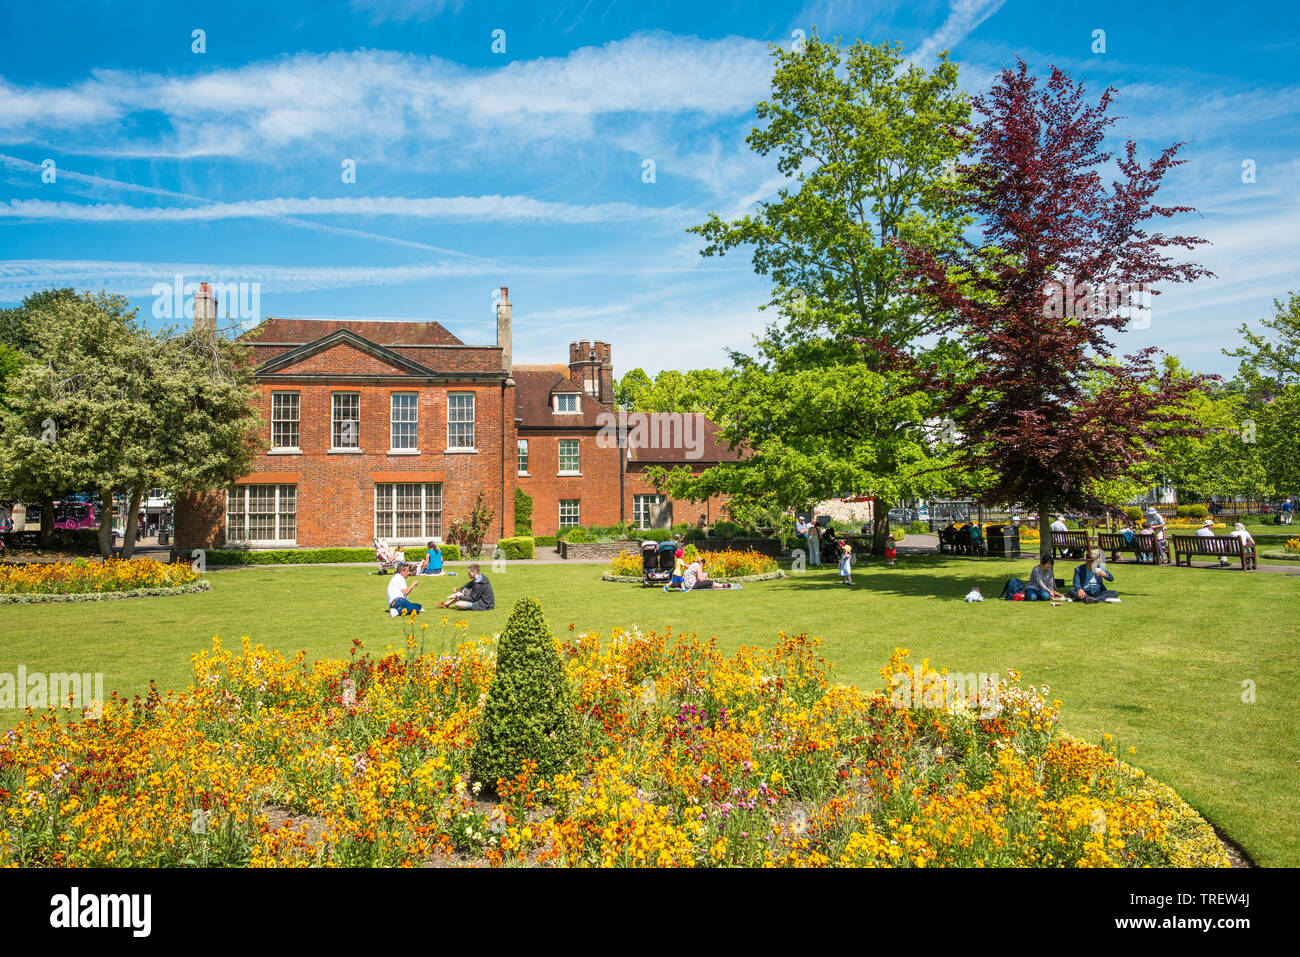 Abbey Gardens with Abbey House, Winchester, Hampshire, England, UK - Stock Image